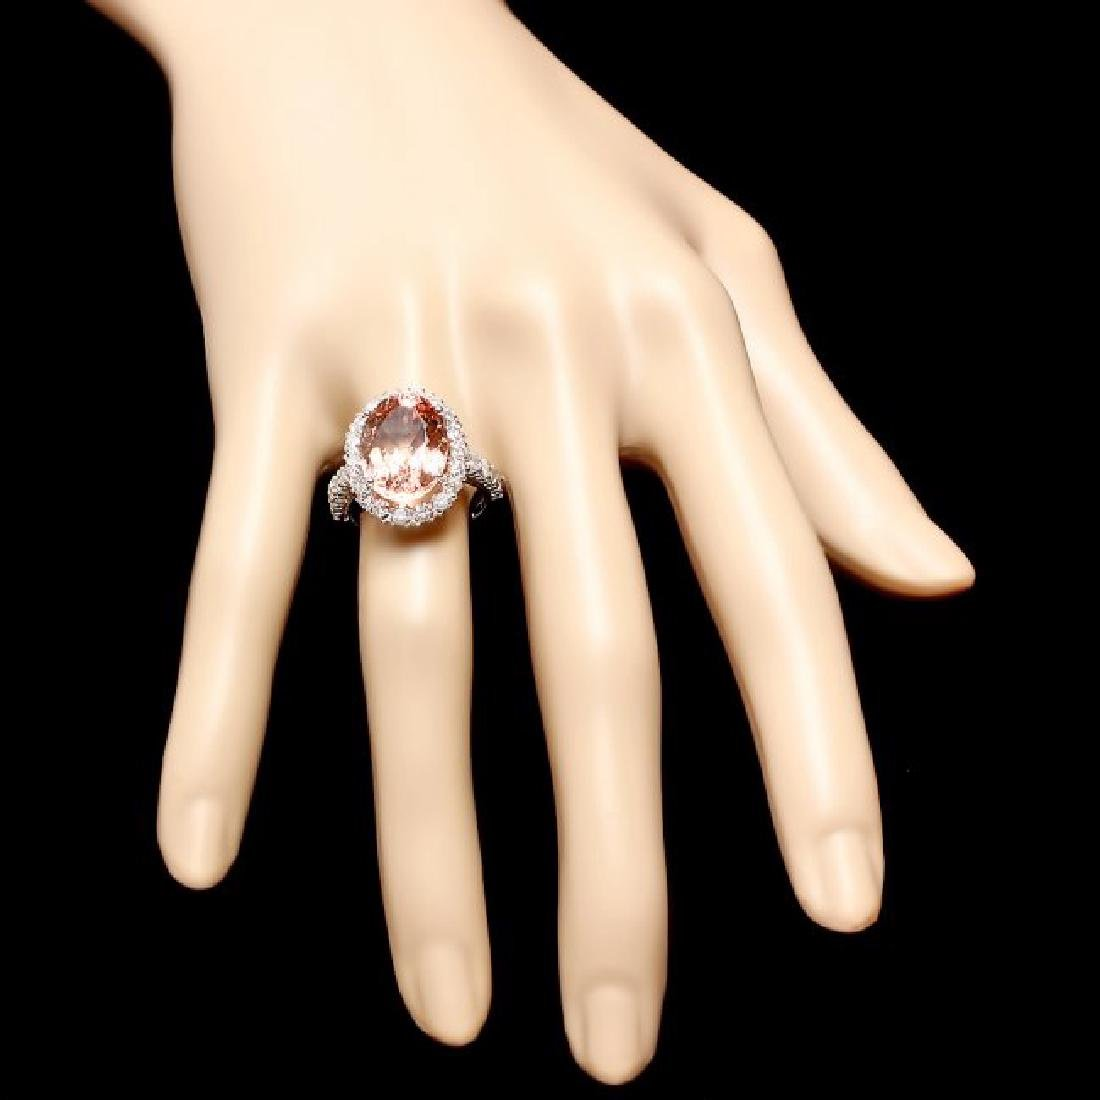 14k Gold 7.25ct Morganite 1.20ct Diamond Ring - 4